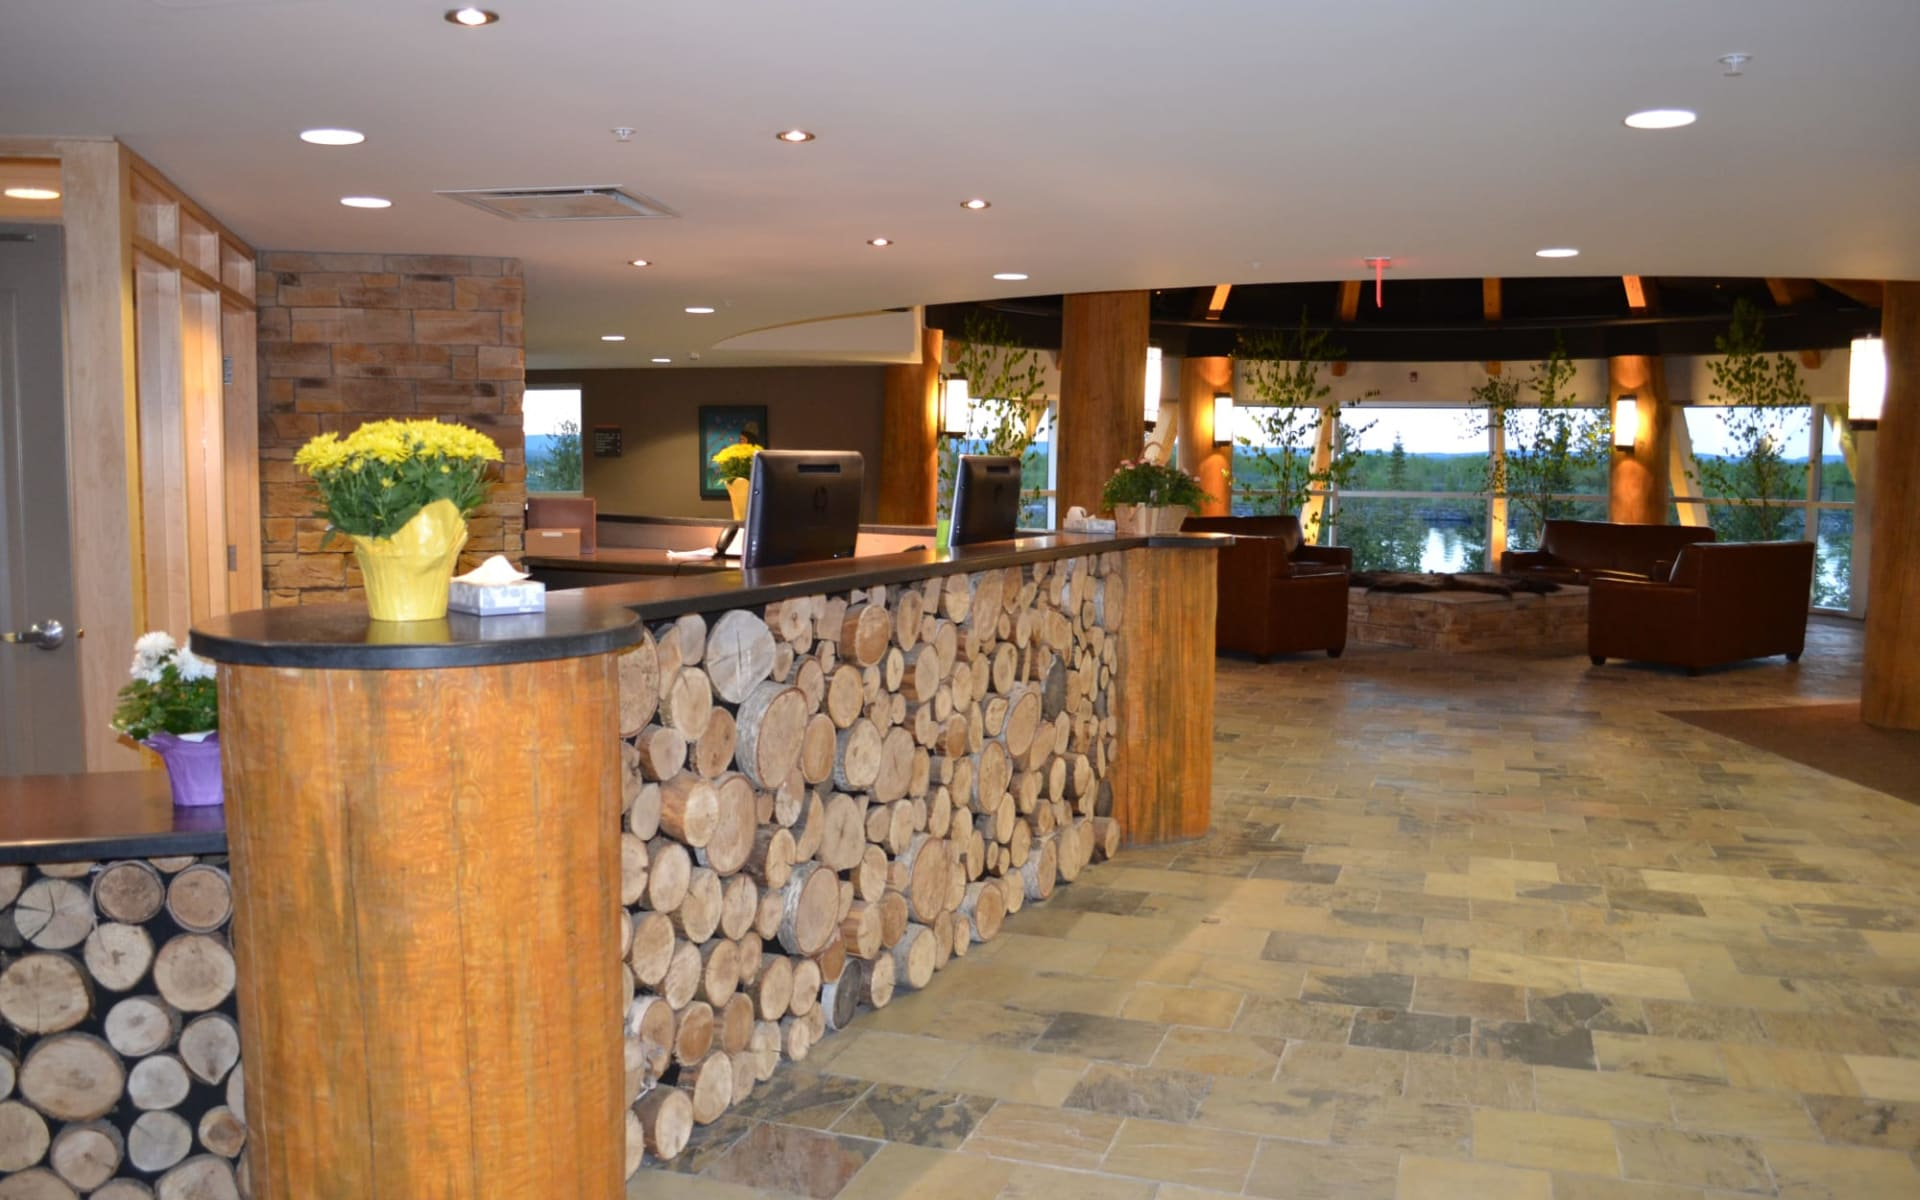 Manitoulin Hotel & Conference Centre in Little Current:  Manitoulin Island Hotel & Conference Centre_Lobby